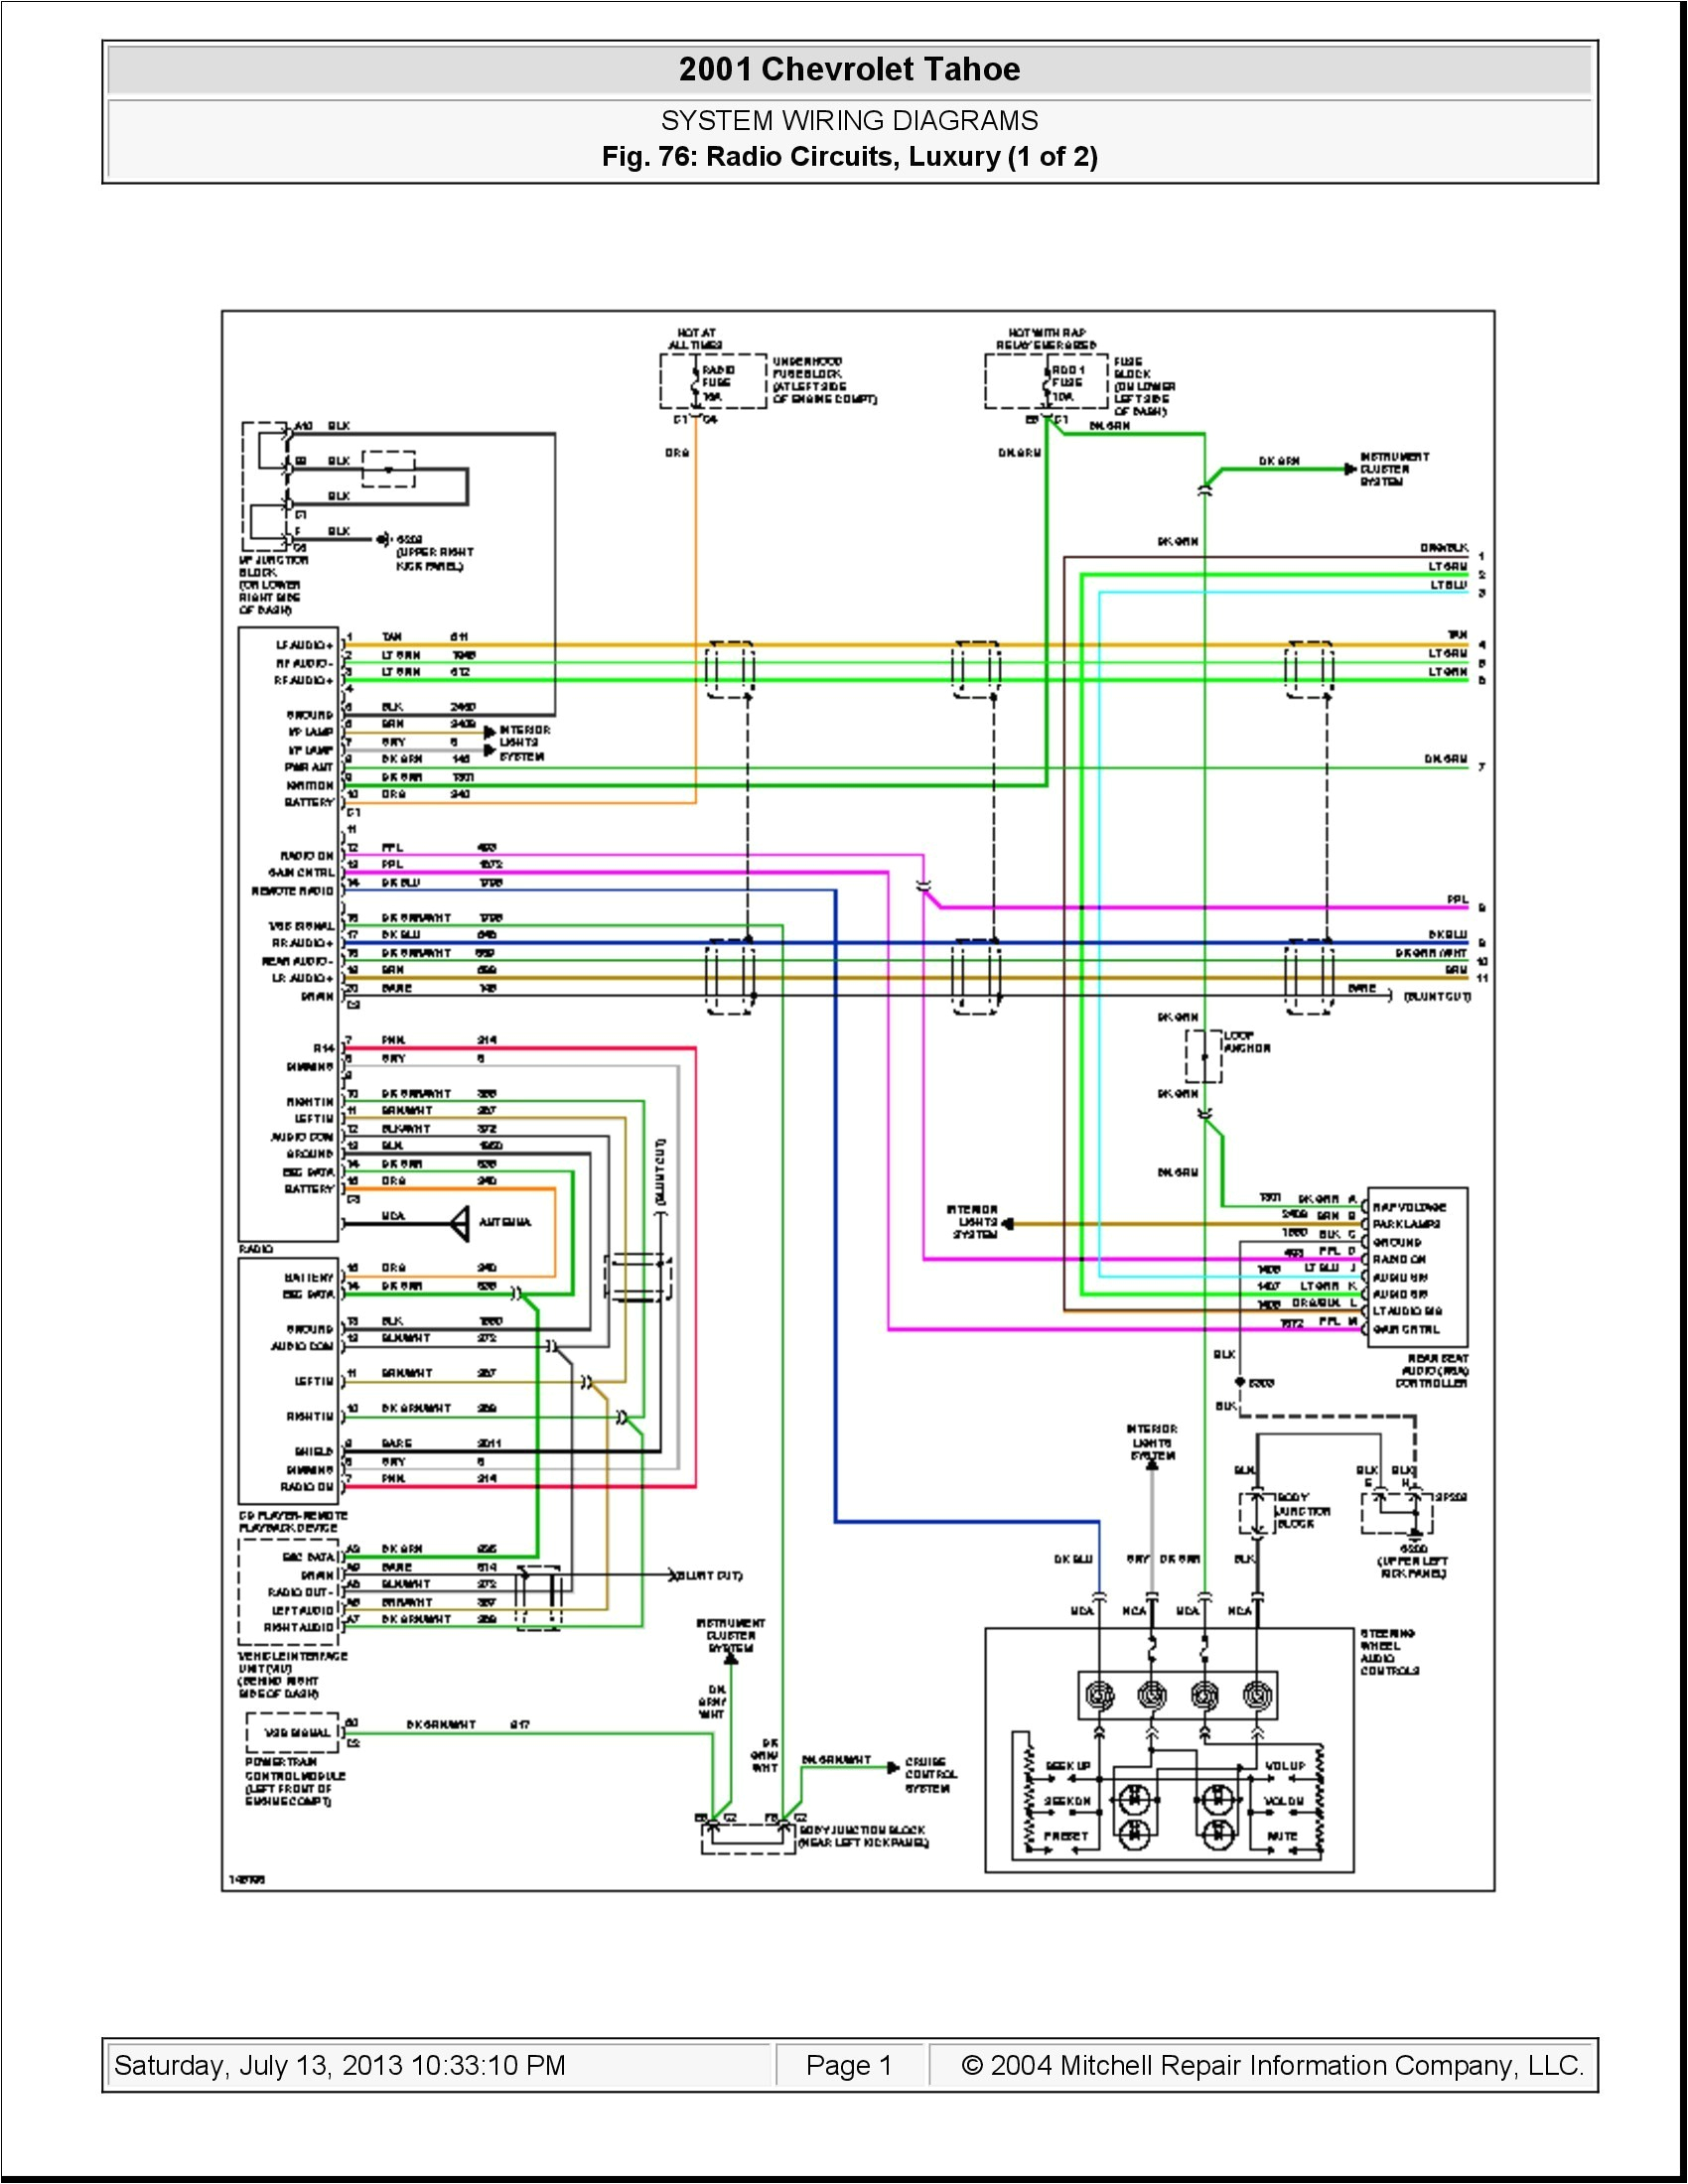 2011 Chevy Traverse Wiring Diagram 2015 Cruze Stereo Wire Diagram Wiring Diagram Page